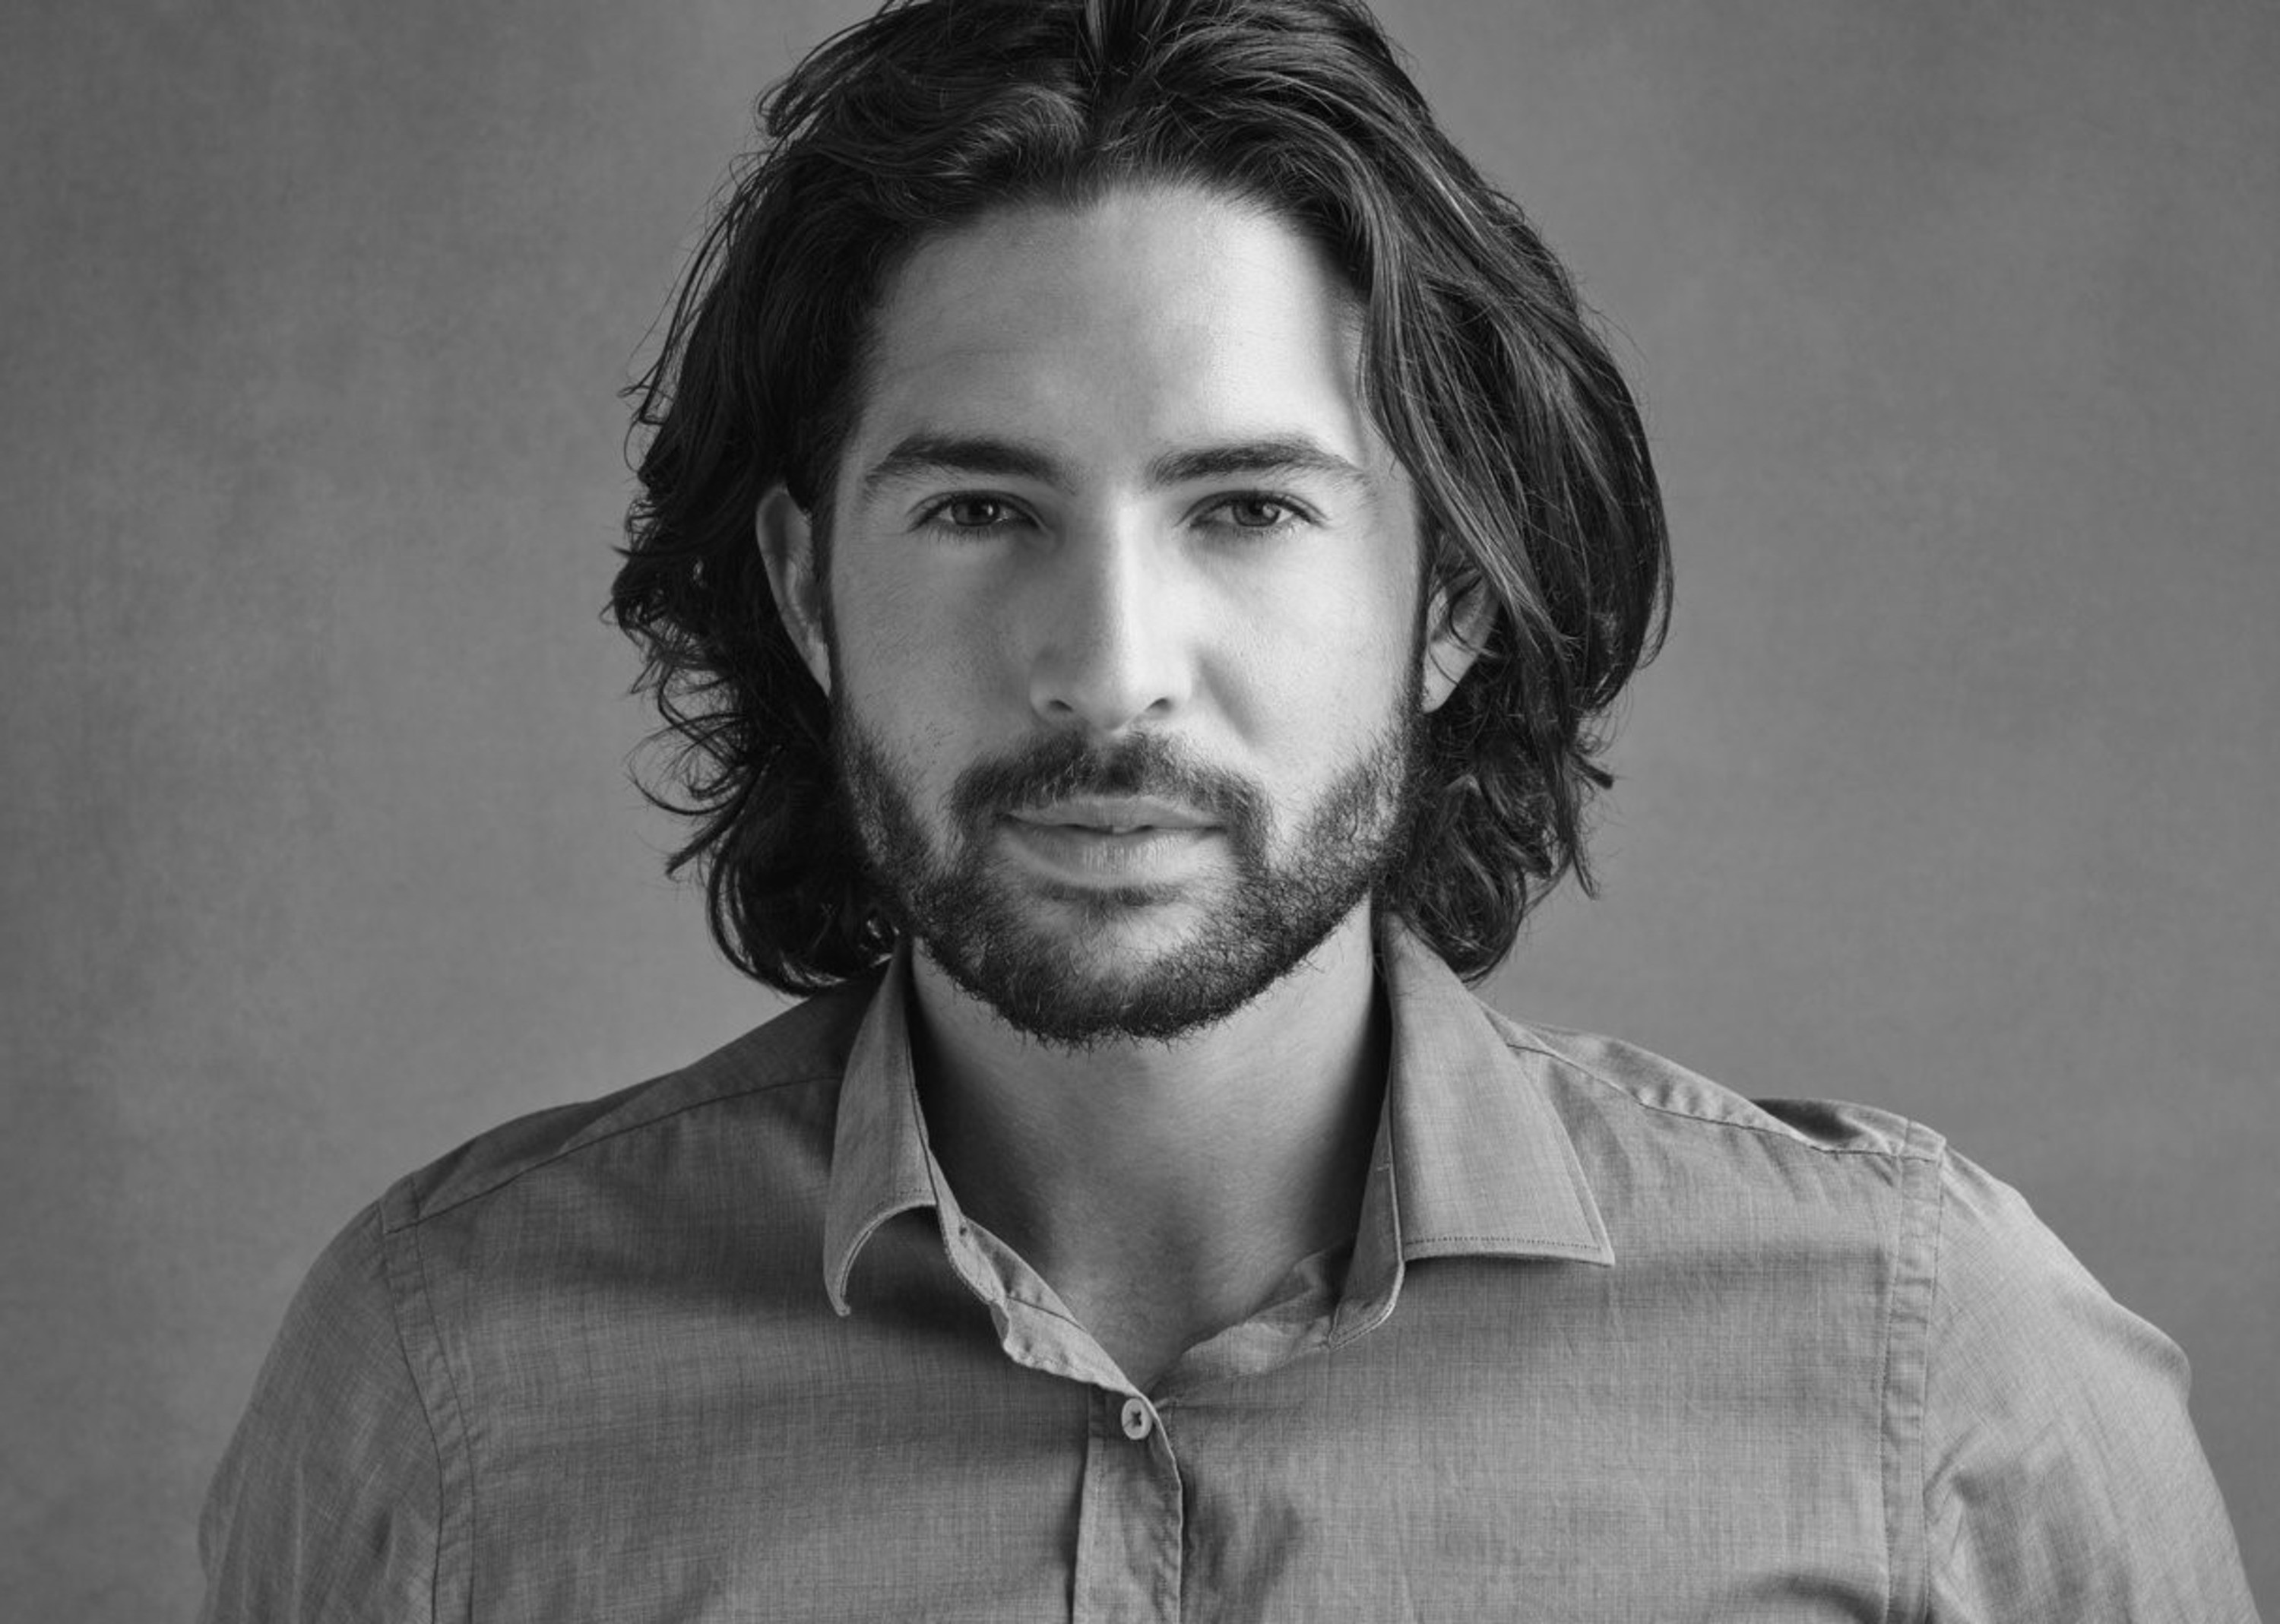 The Bro Flow Fashion hairstyle for modern men.